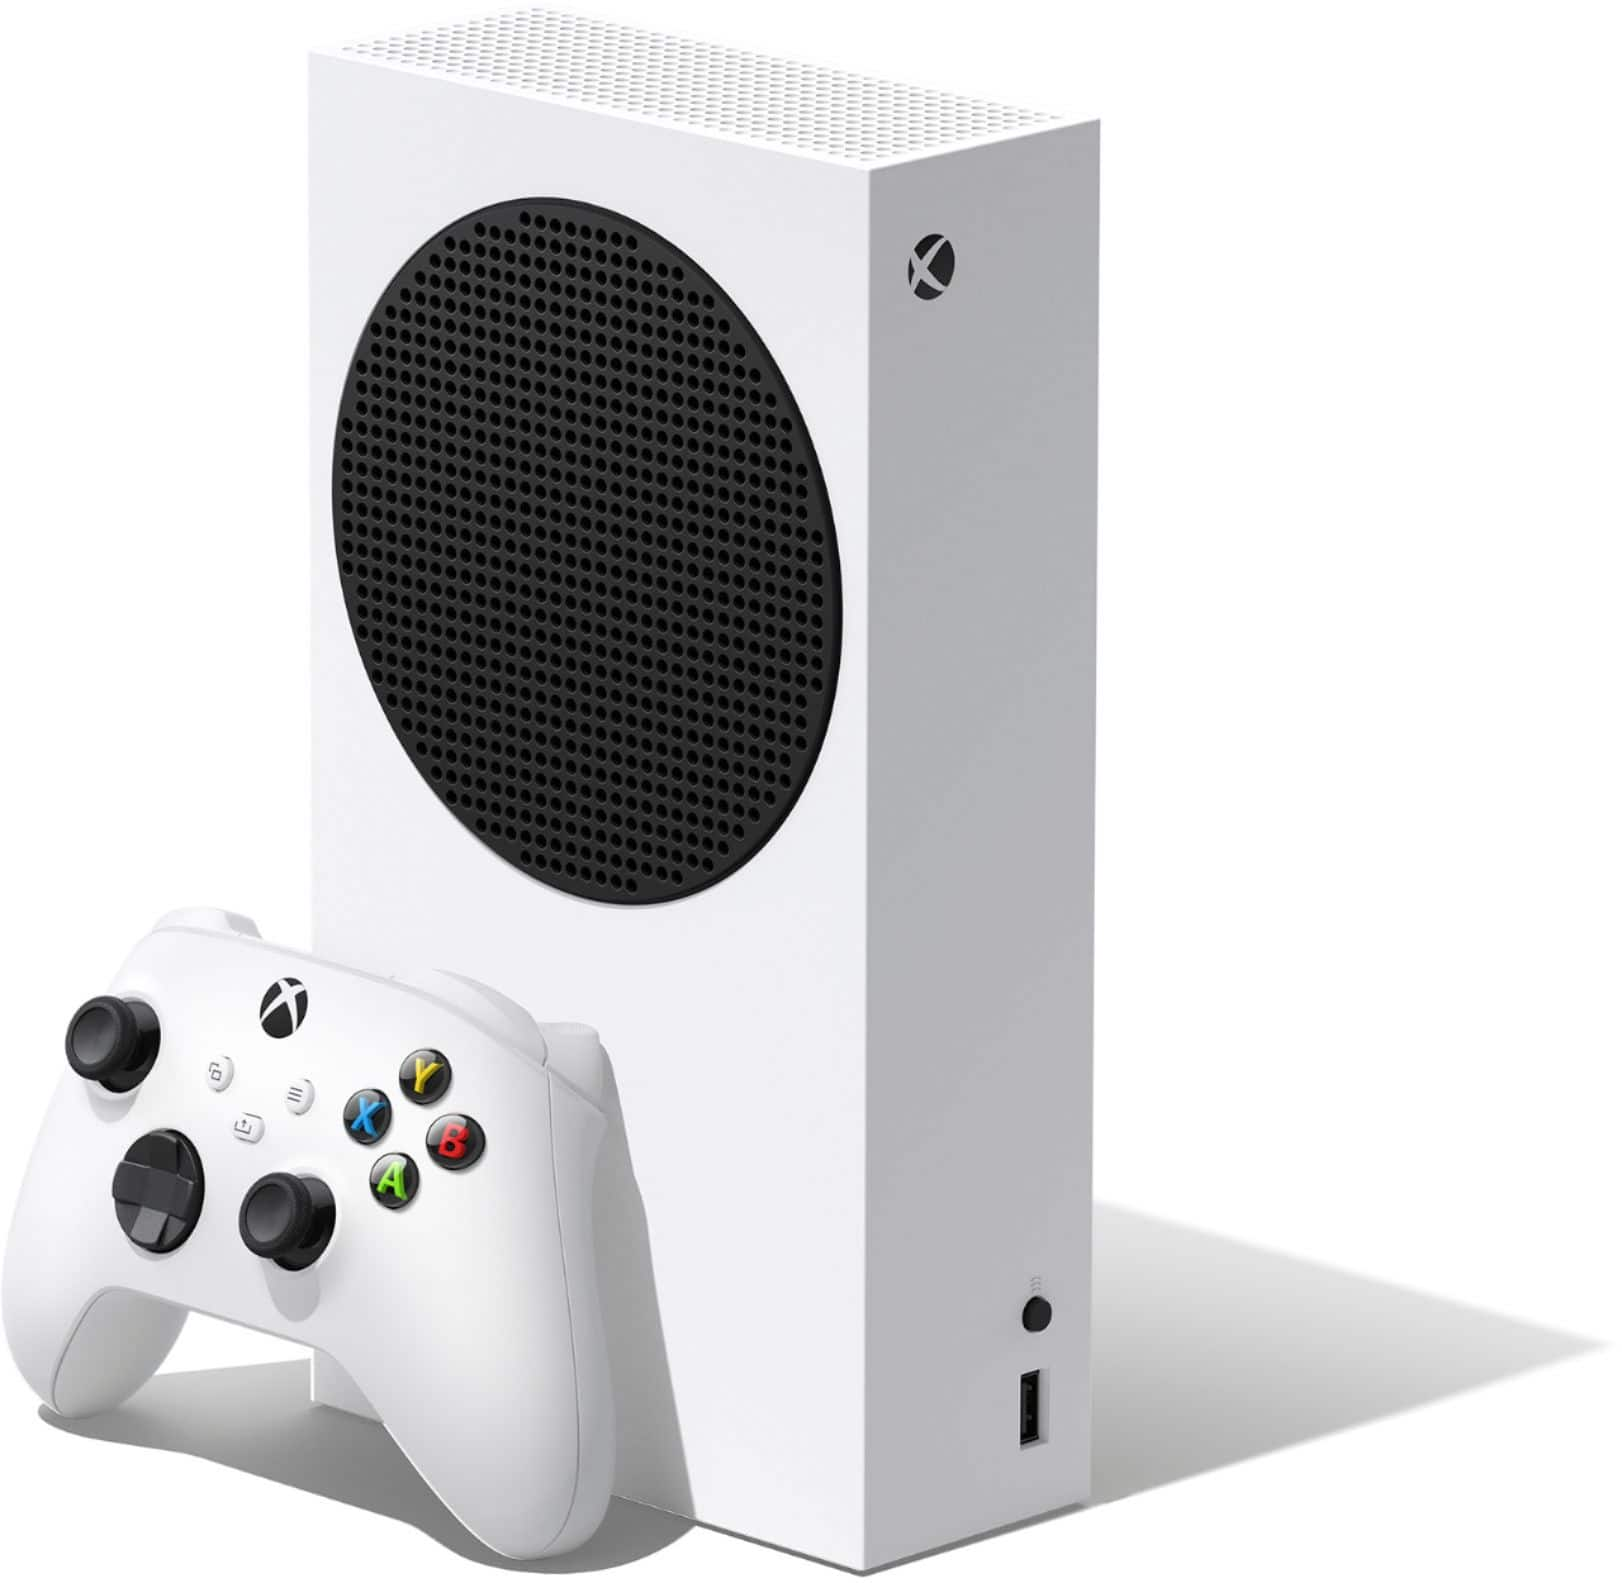 Microsoft Xbox Series S 512 GB All-Digital Console $299.99 at Best Buy